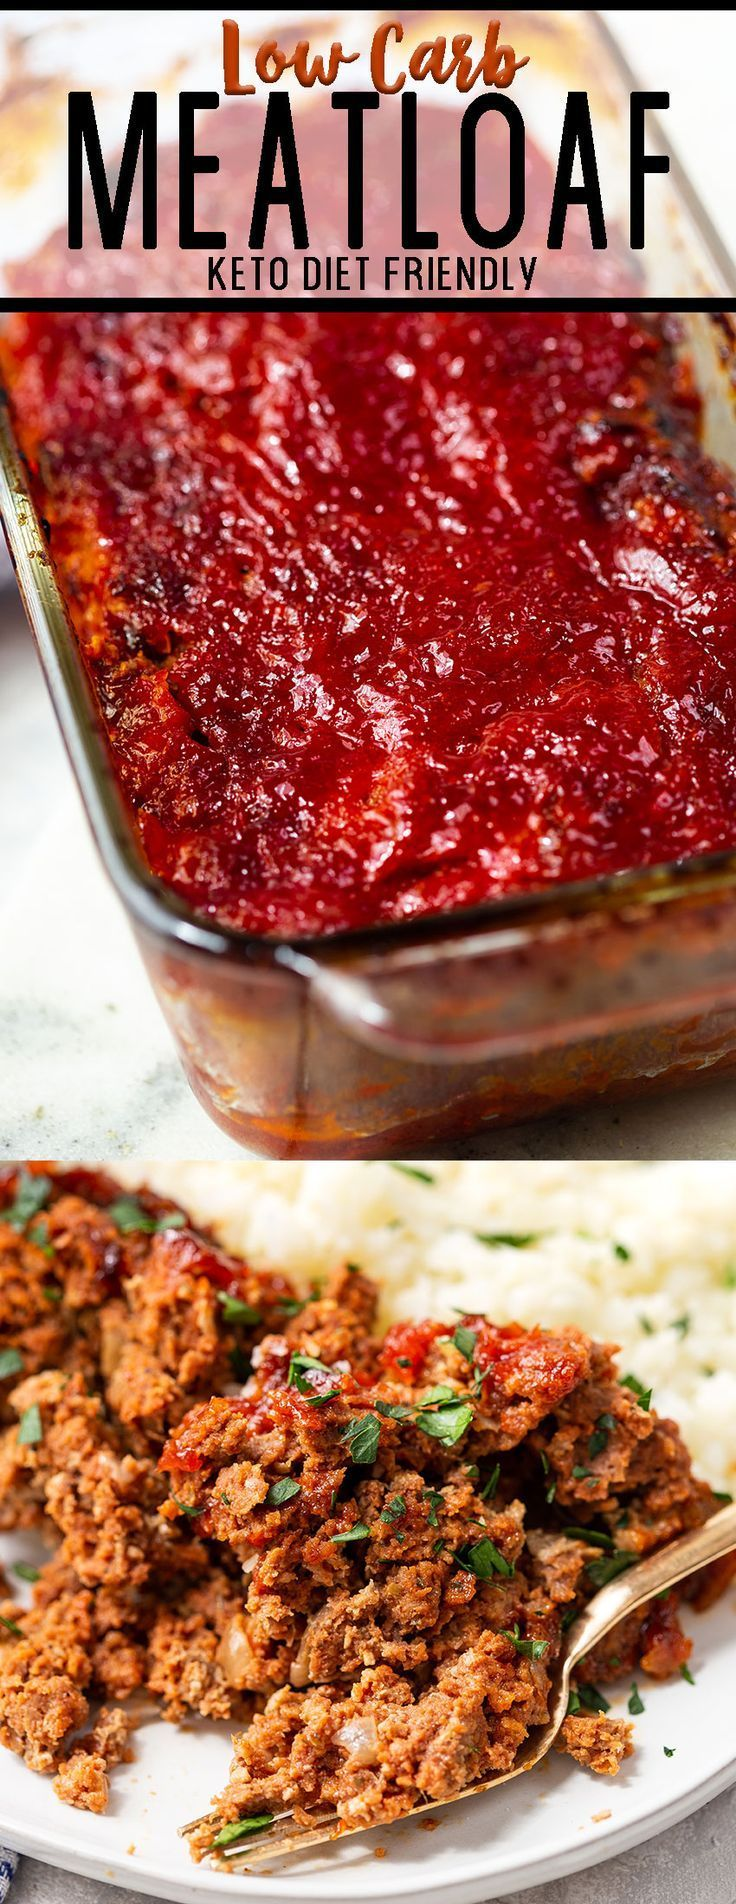 Keto Low Carb Meatloaf Recipe Low Carb Meatloaf Low Carb Recipes Keto